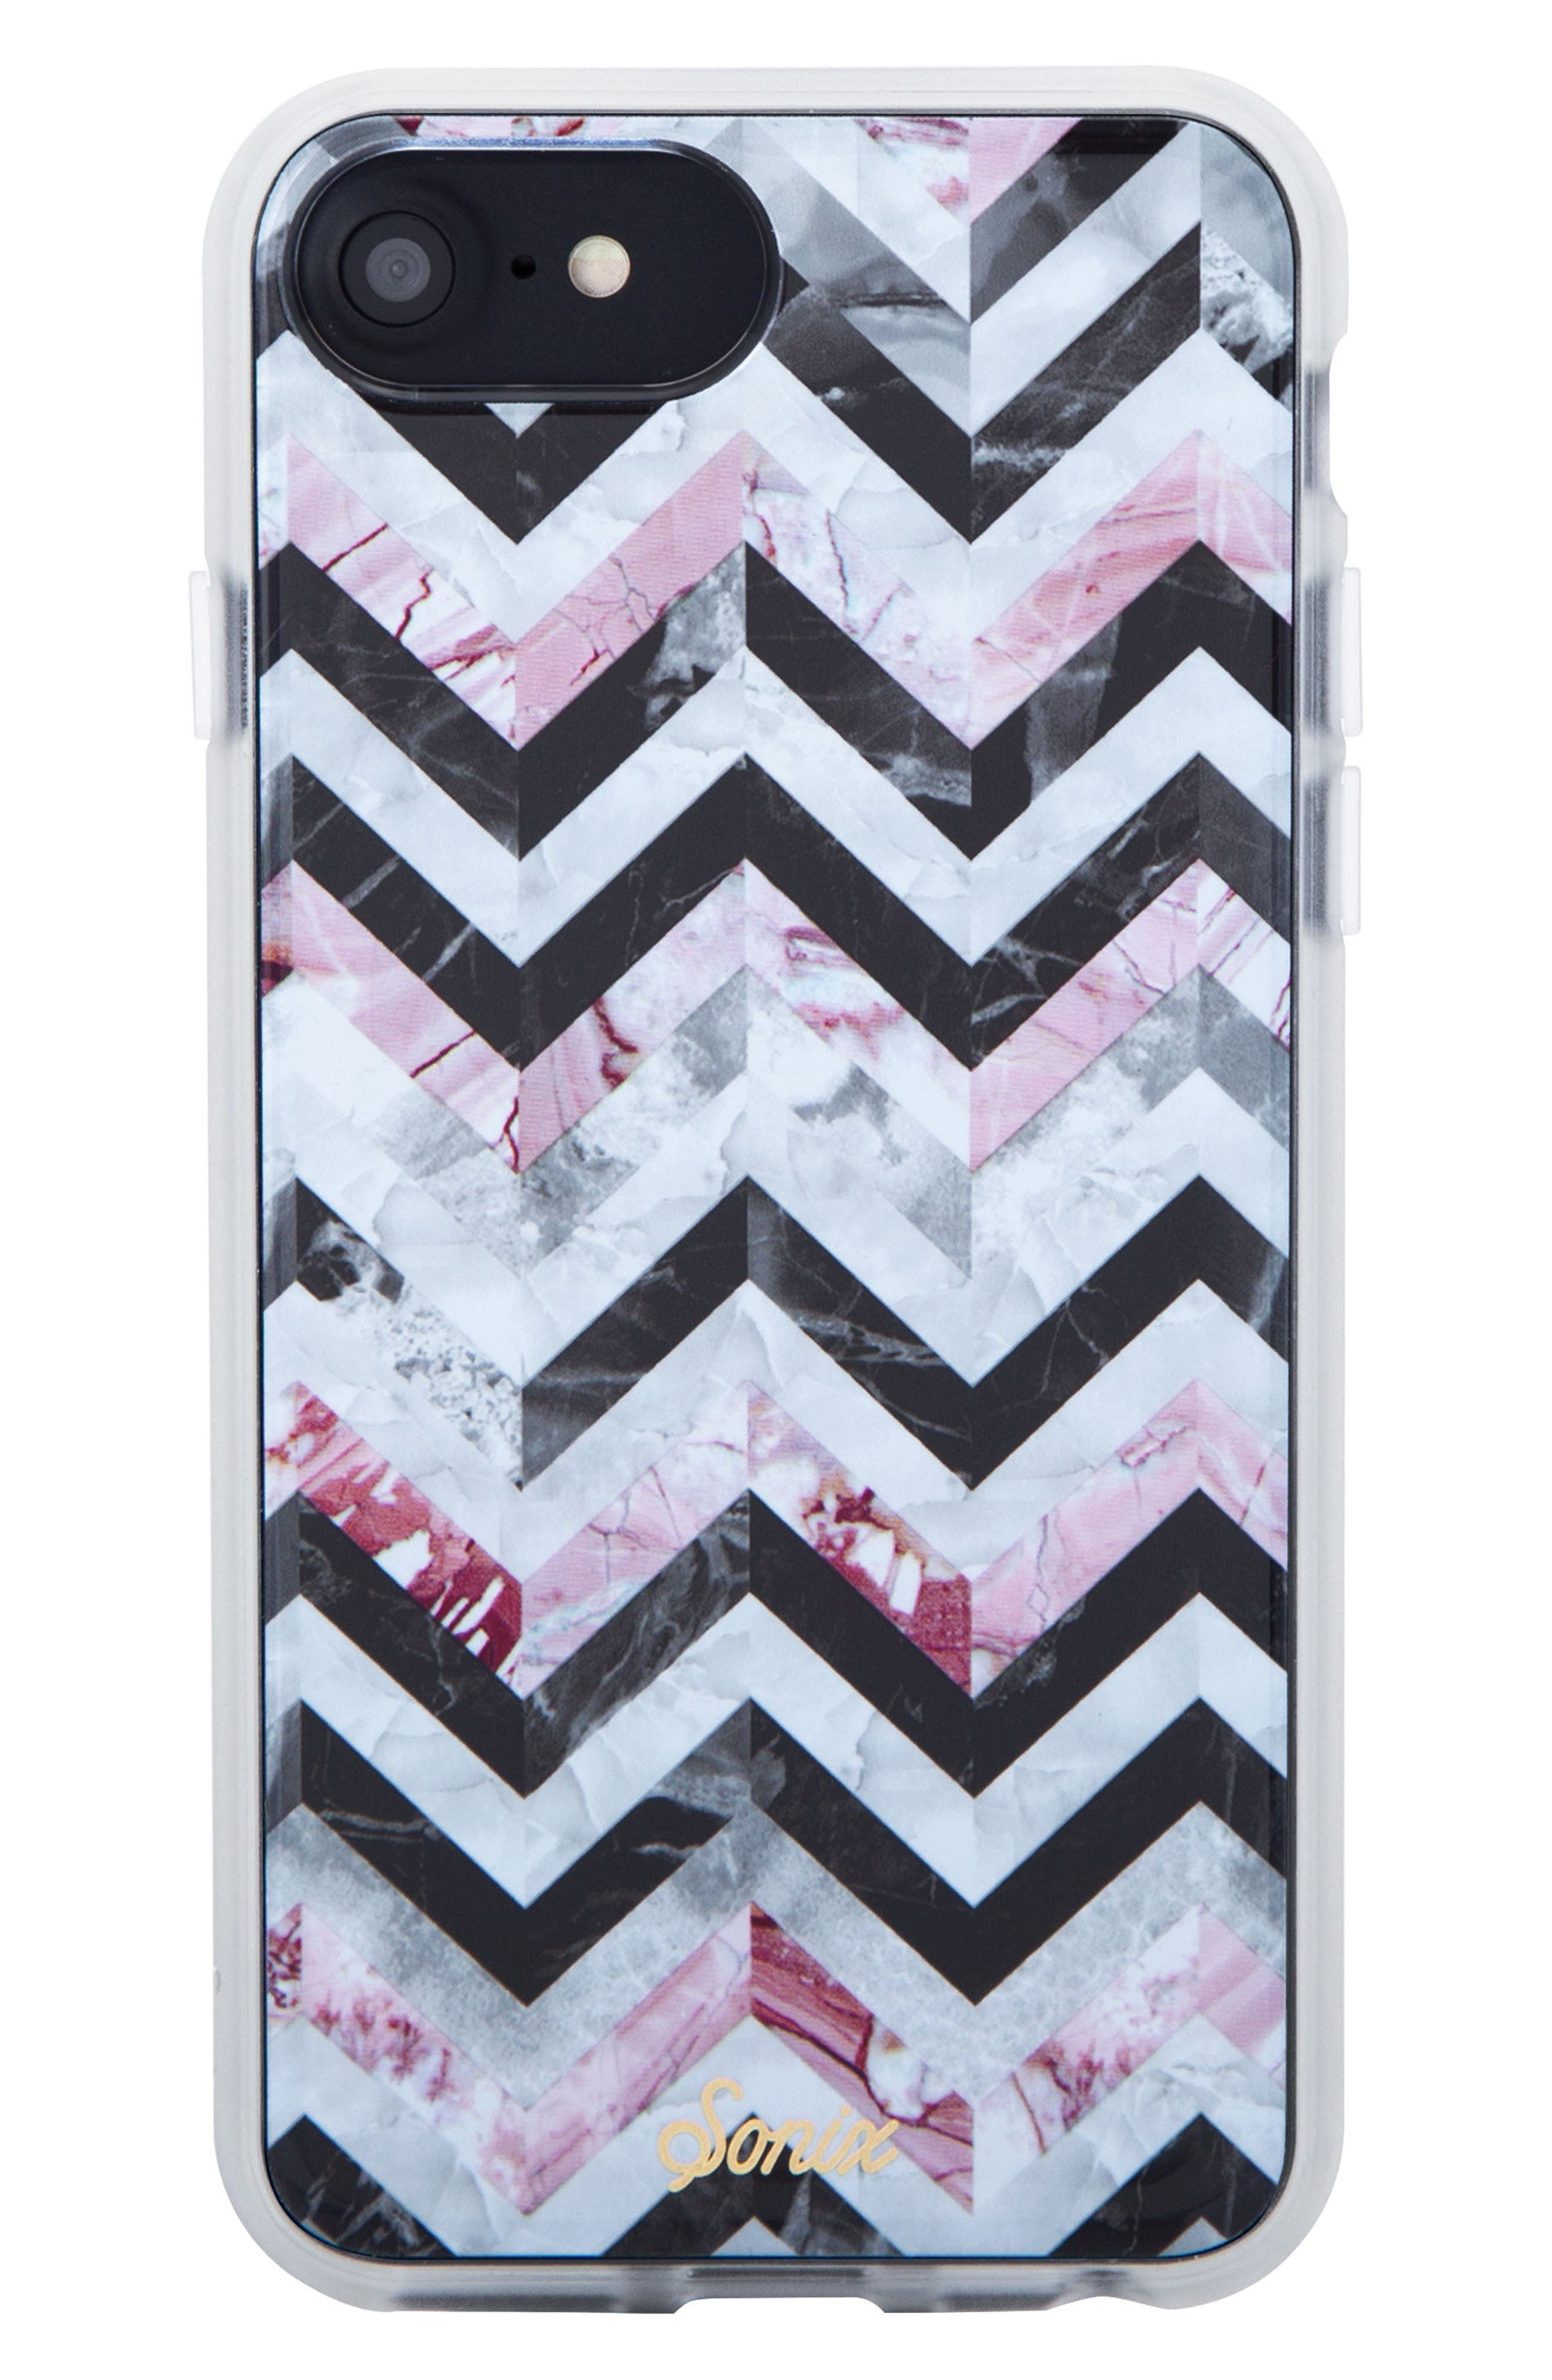 City Tile iPhone 6/6s/7/8 & 6/6s/7/8 Plus Case,                             Main thumbnail 1, color,                             BLACK/ MARBLE